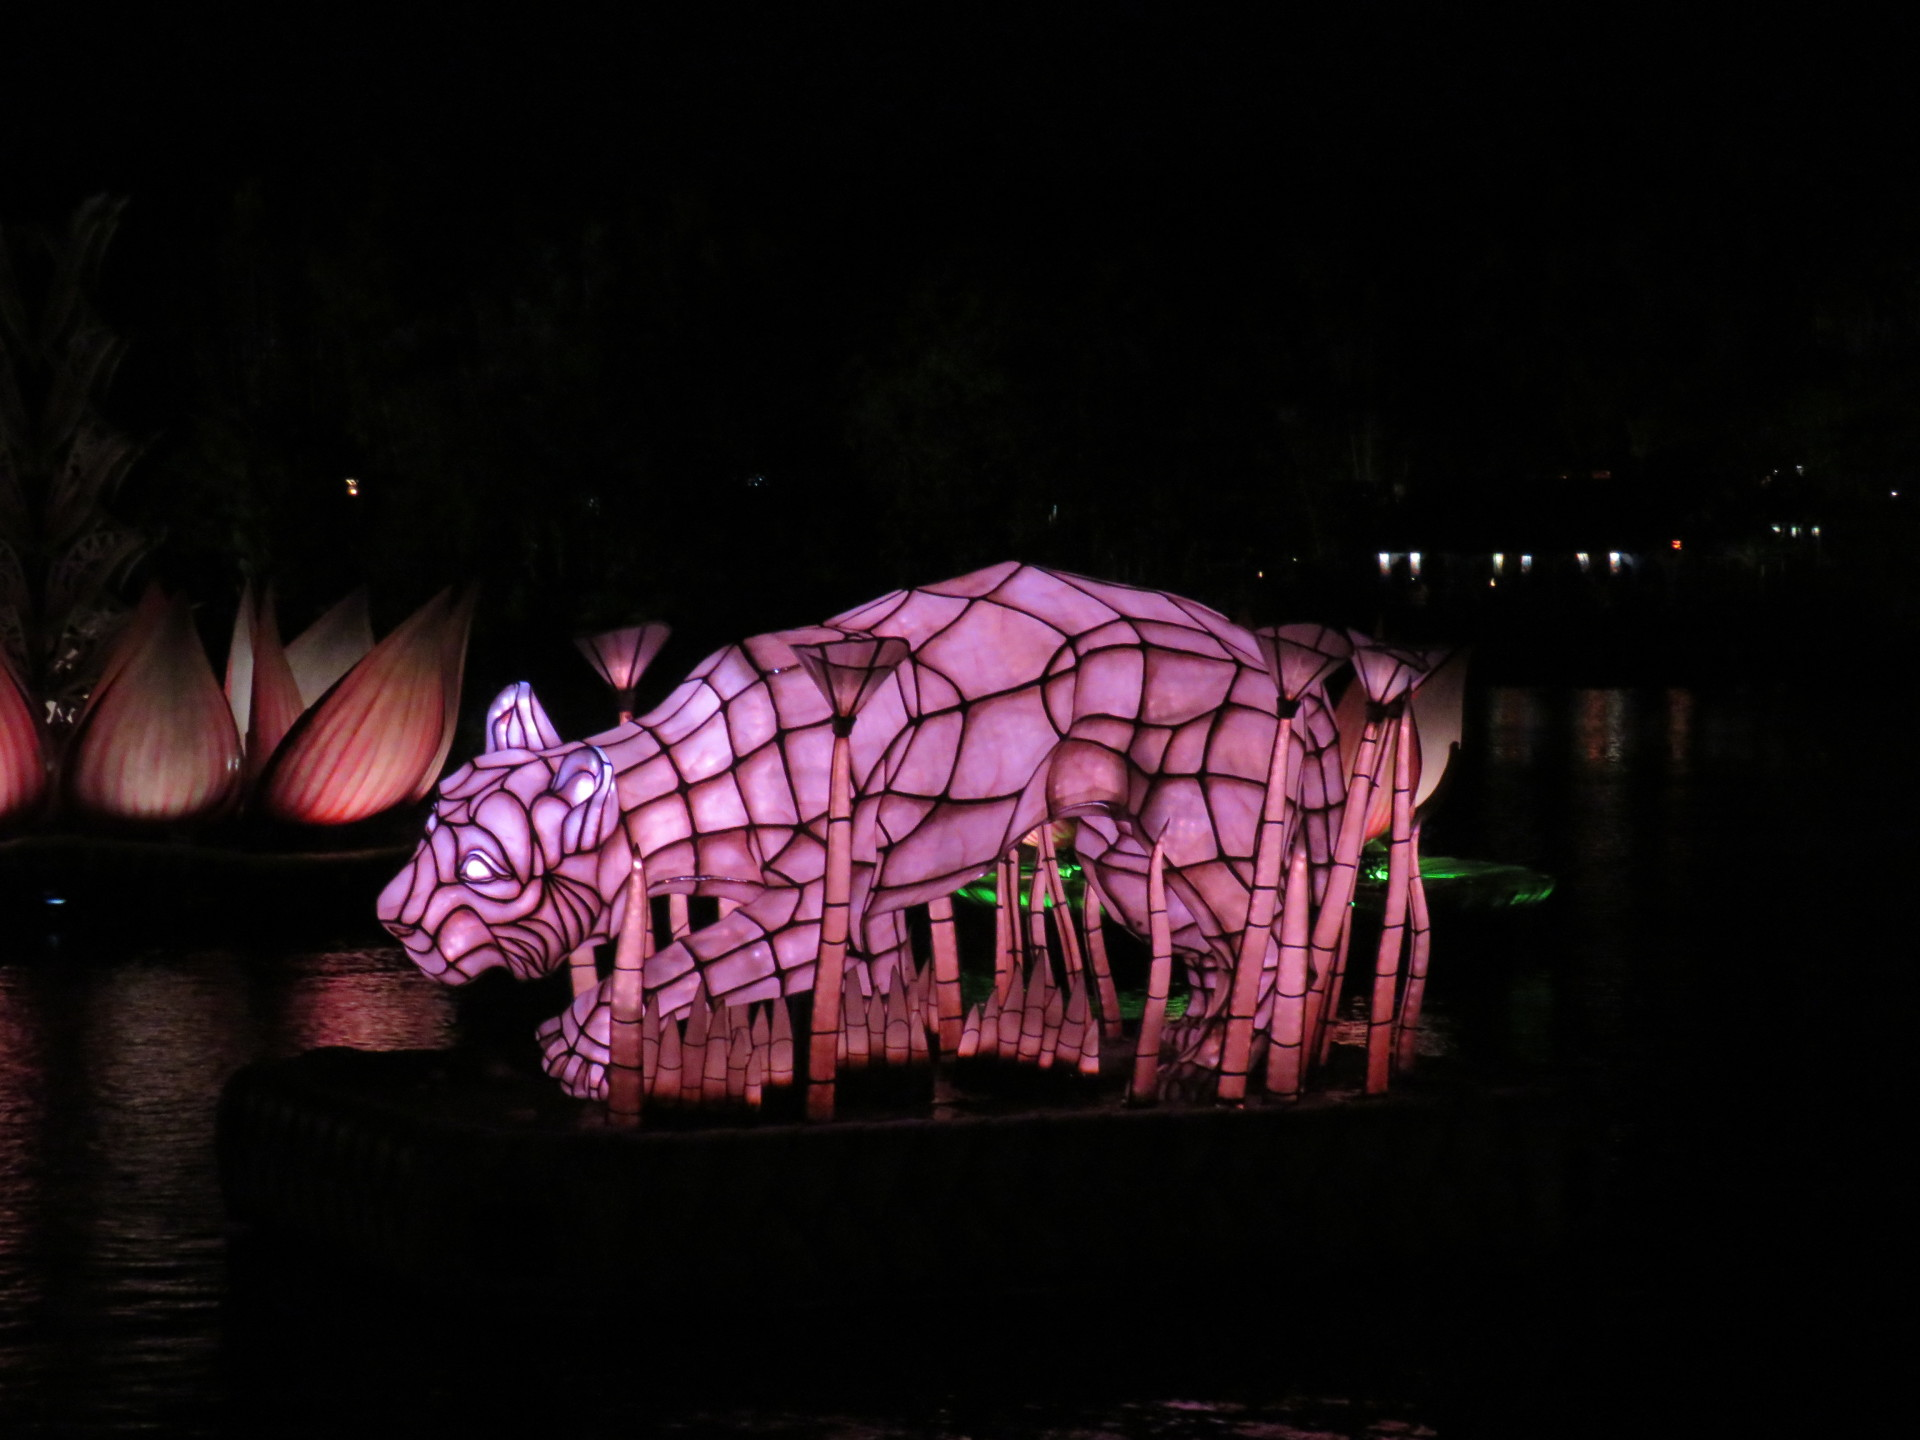 'Rivers of Light' Full Video from Disney's Animal Kingdom